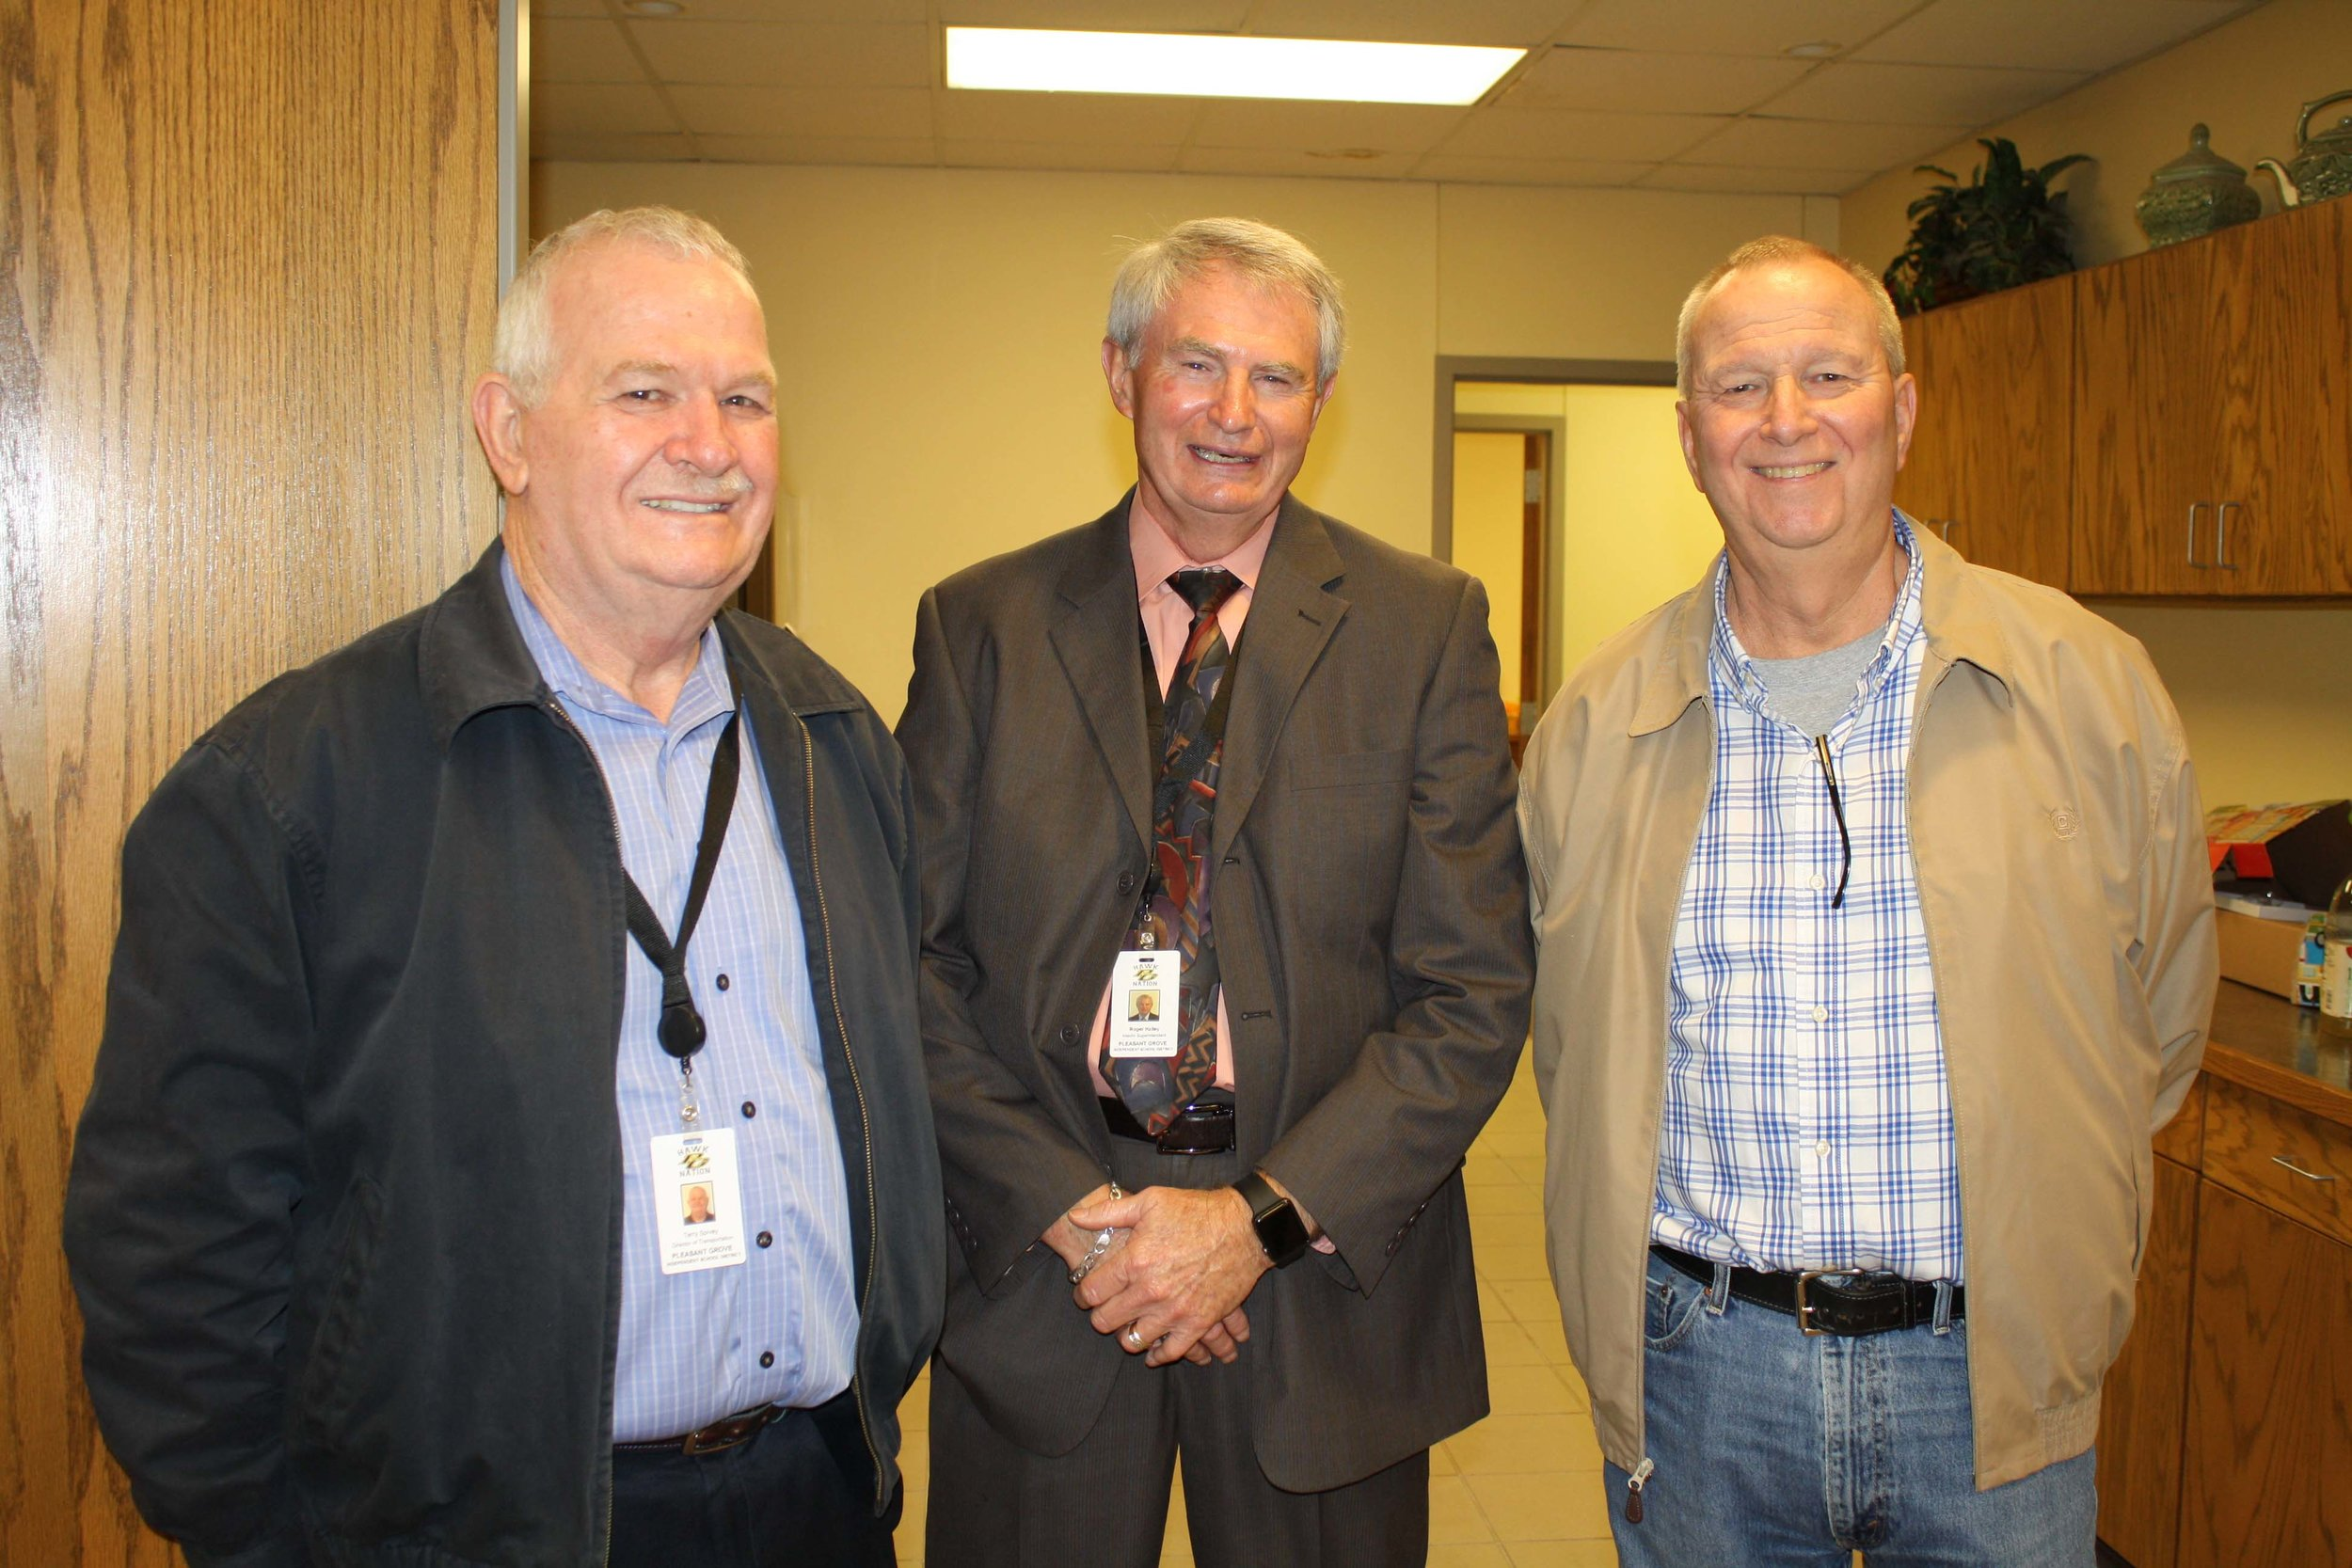 Terry Spivey, Roger Hailey and Mark Roberts